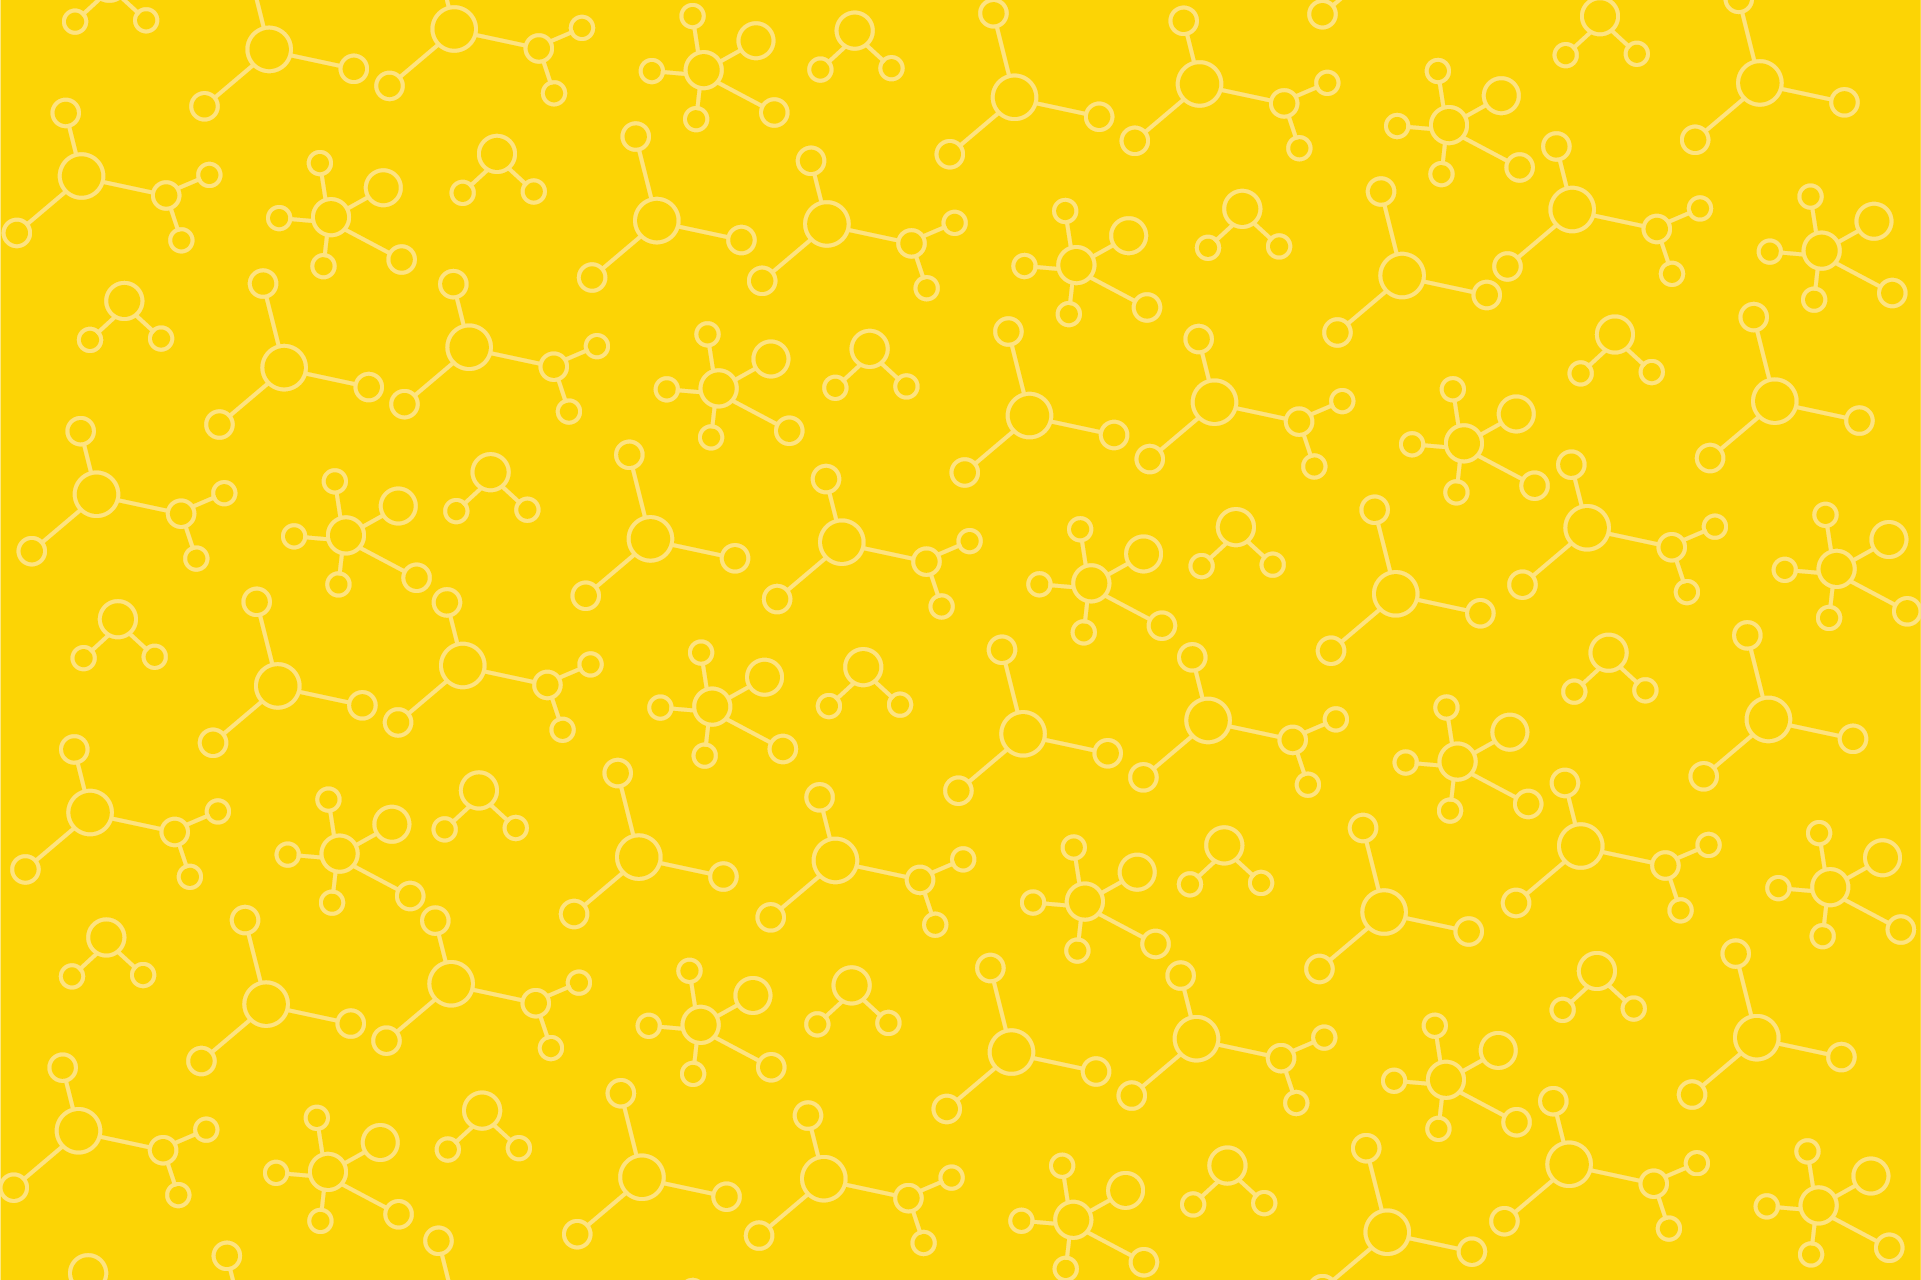 molecules_yellow